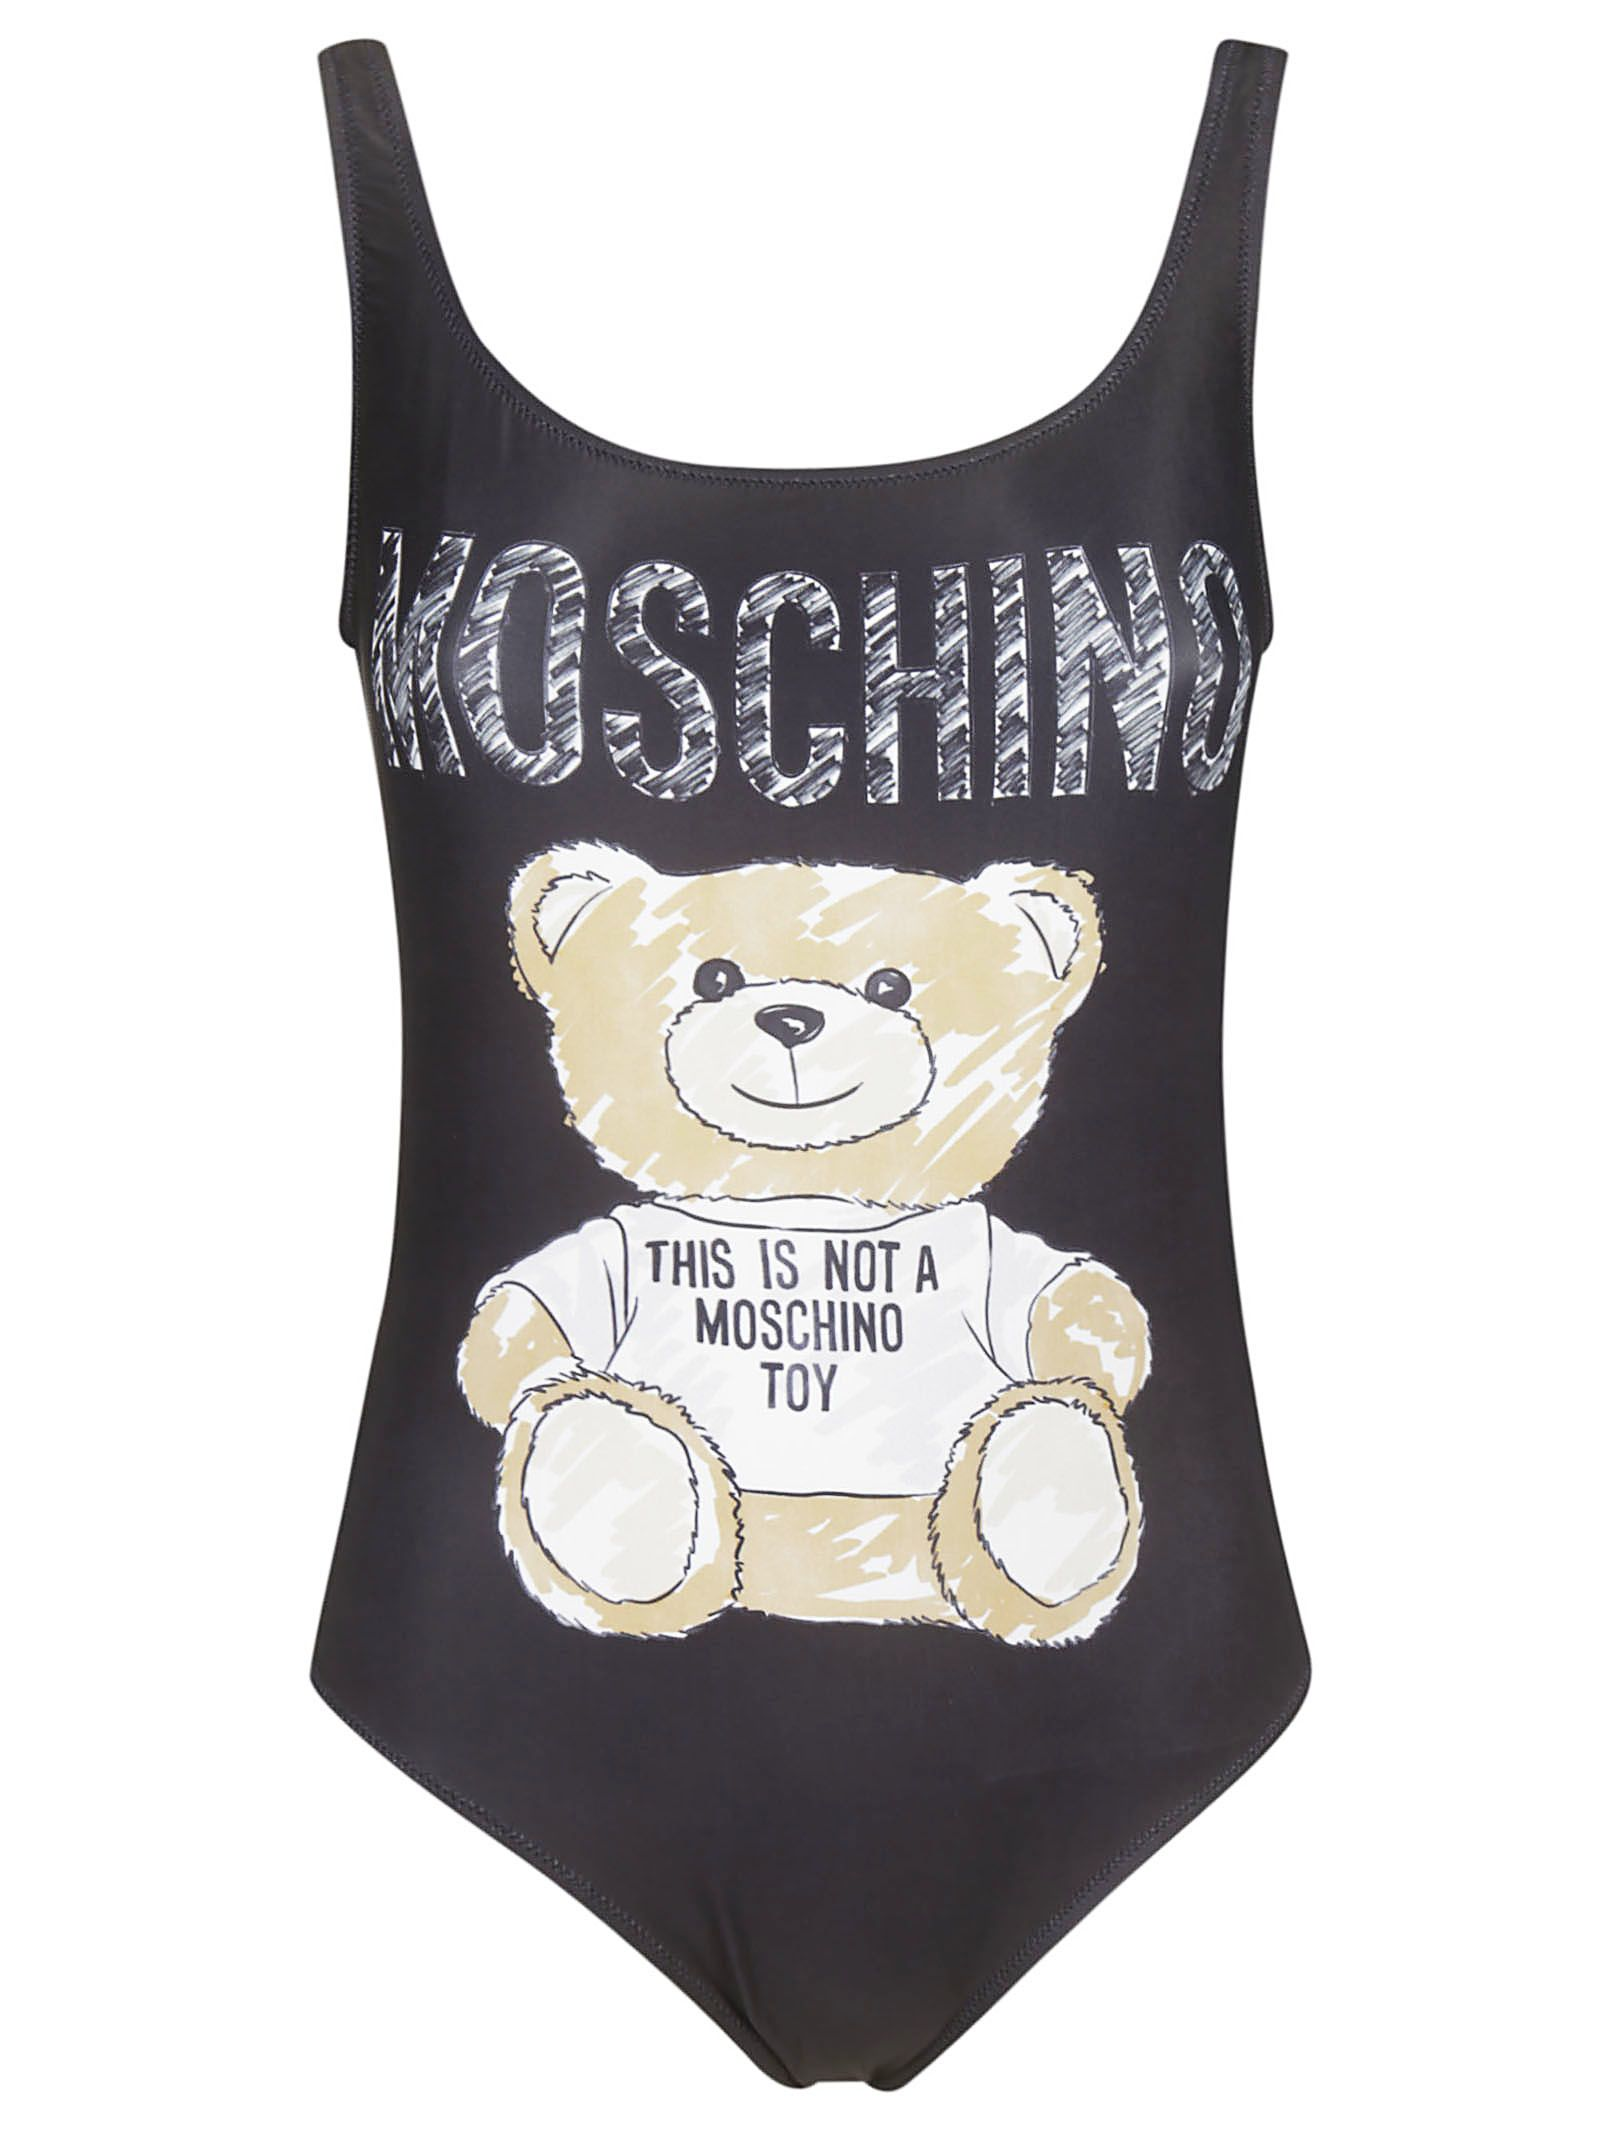 b7a752a32f Moschino Moschino Sketch Bear Swimsuit - black - 10882714 | italist